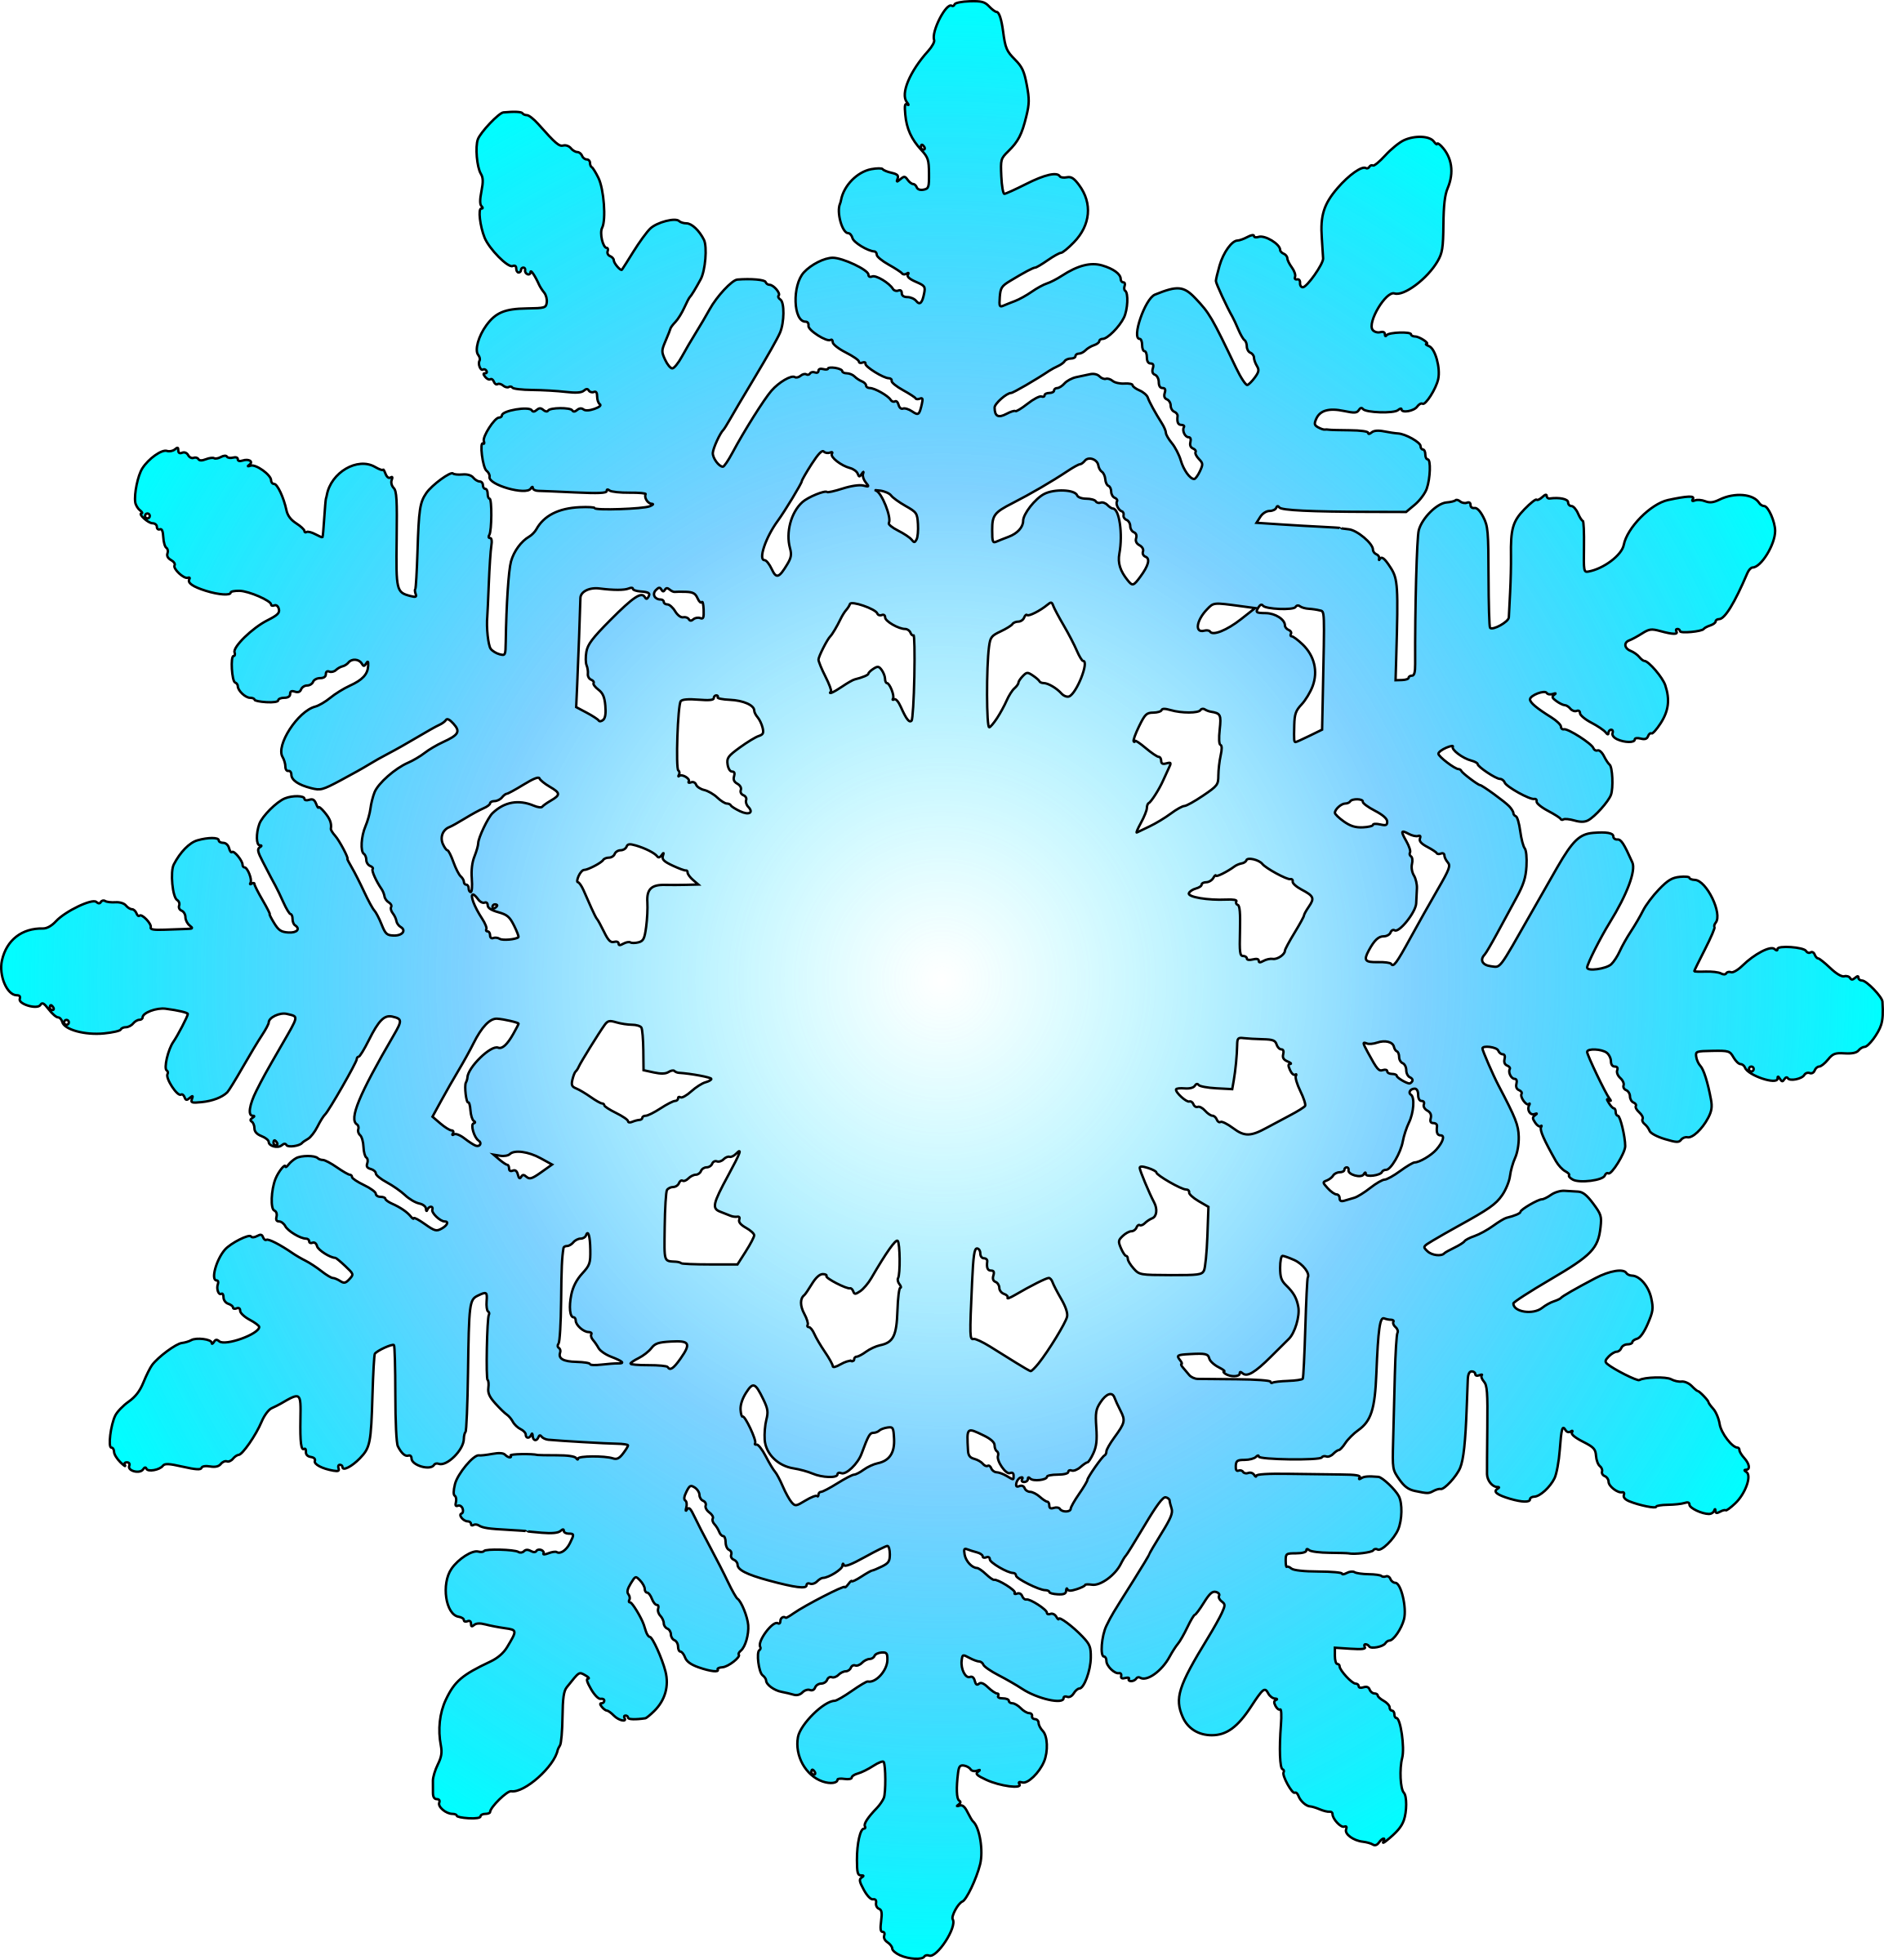 snow flake 1 by zecas